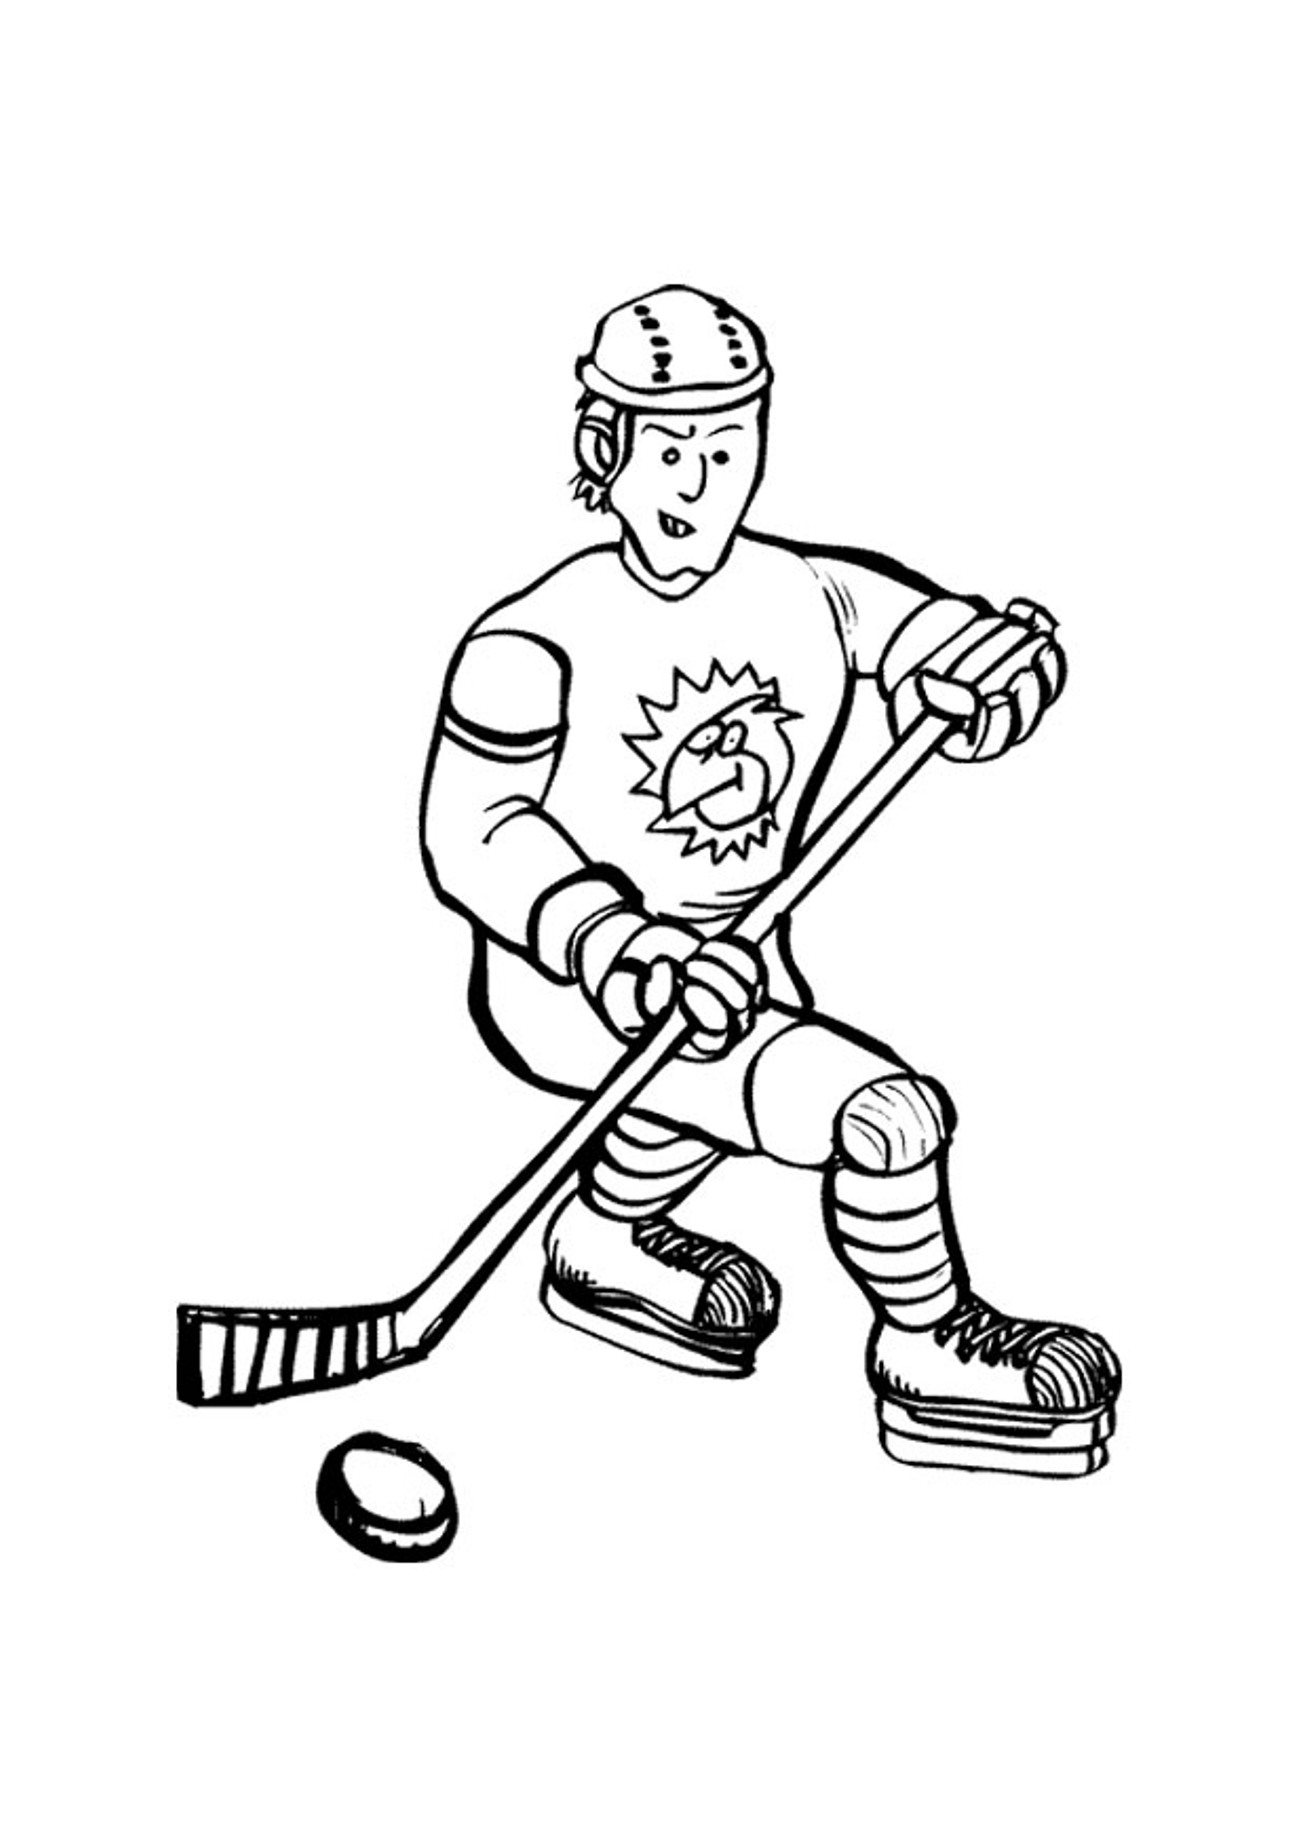 pictures of chicago blackhawks logo az hockey coloring page with sidney crosby coloring pages - Chicago Blackhawks Coloring Pages